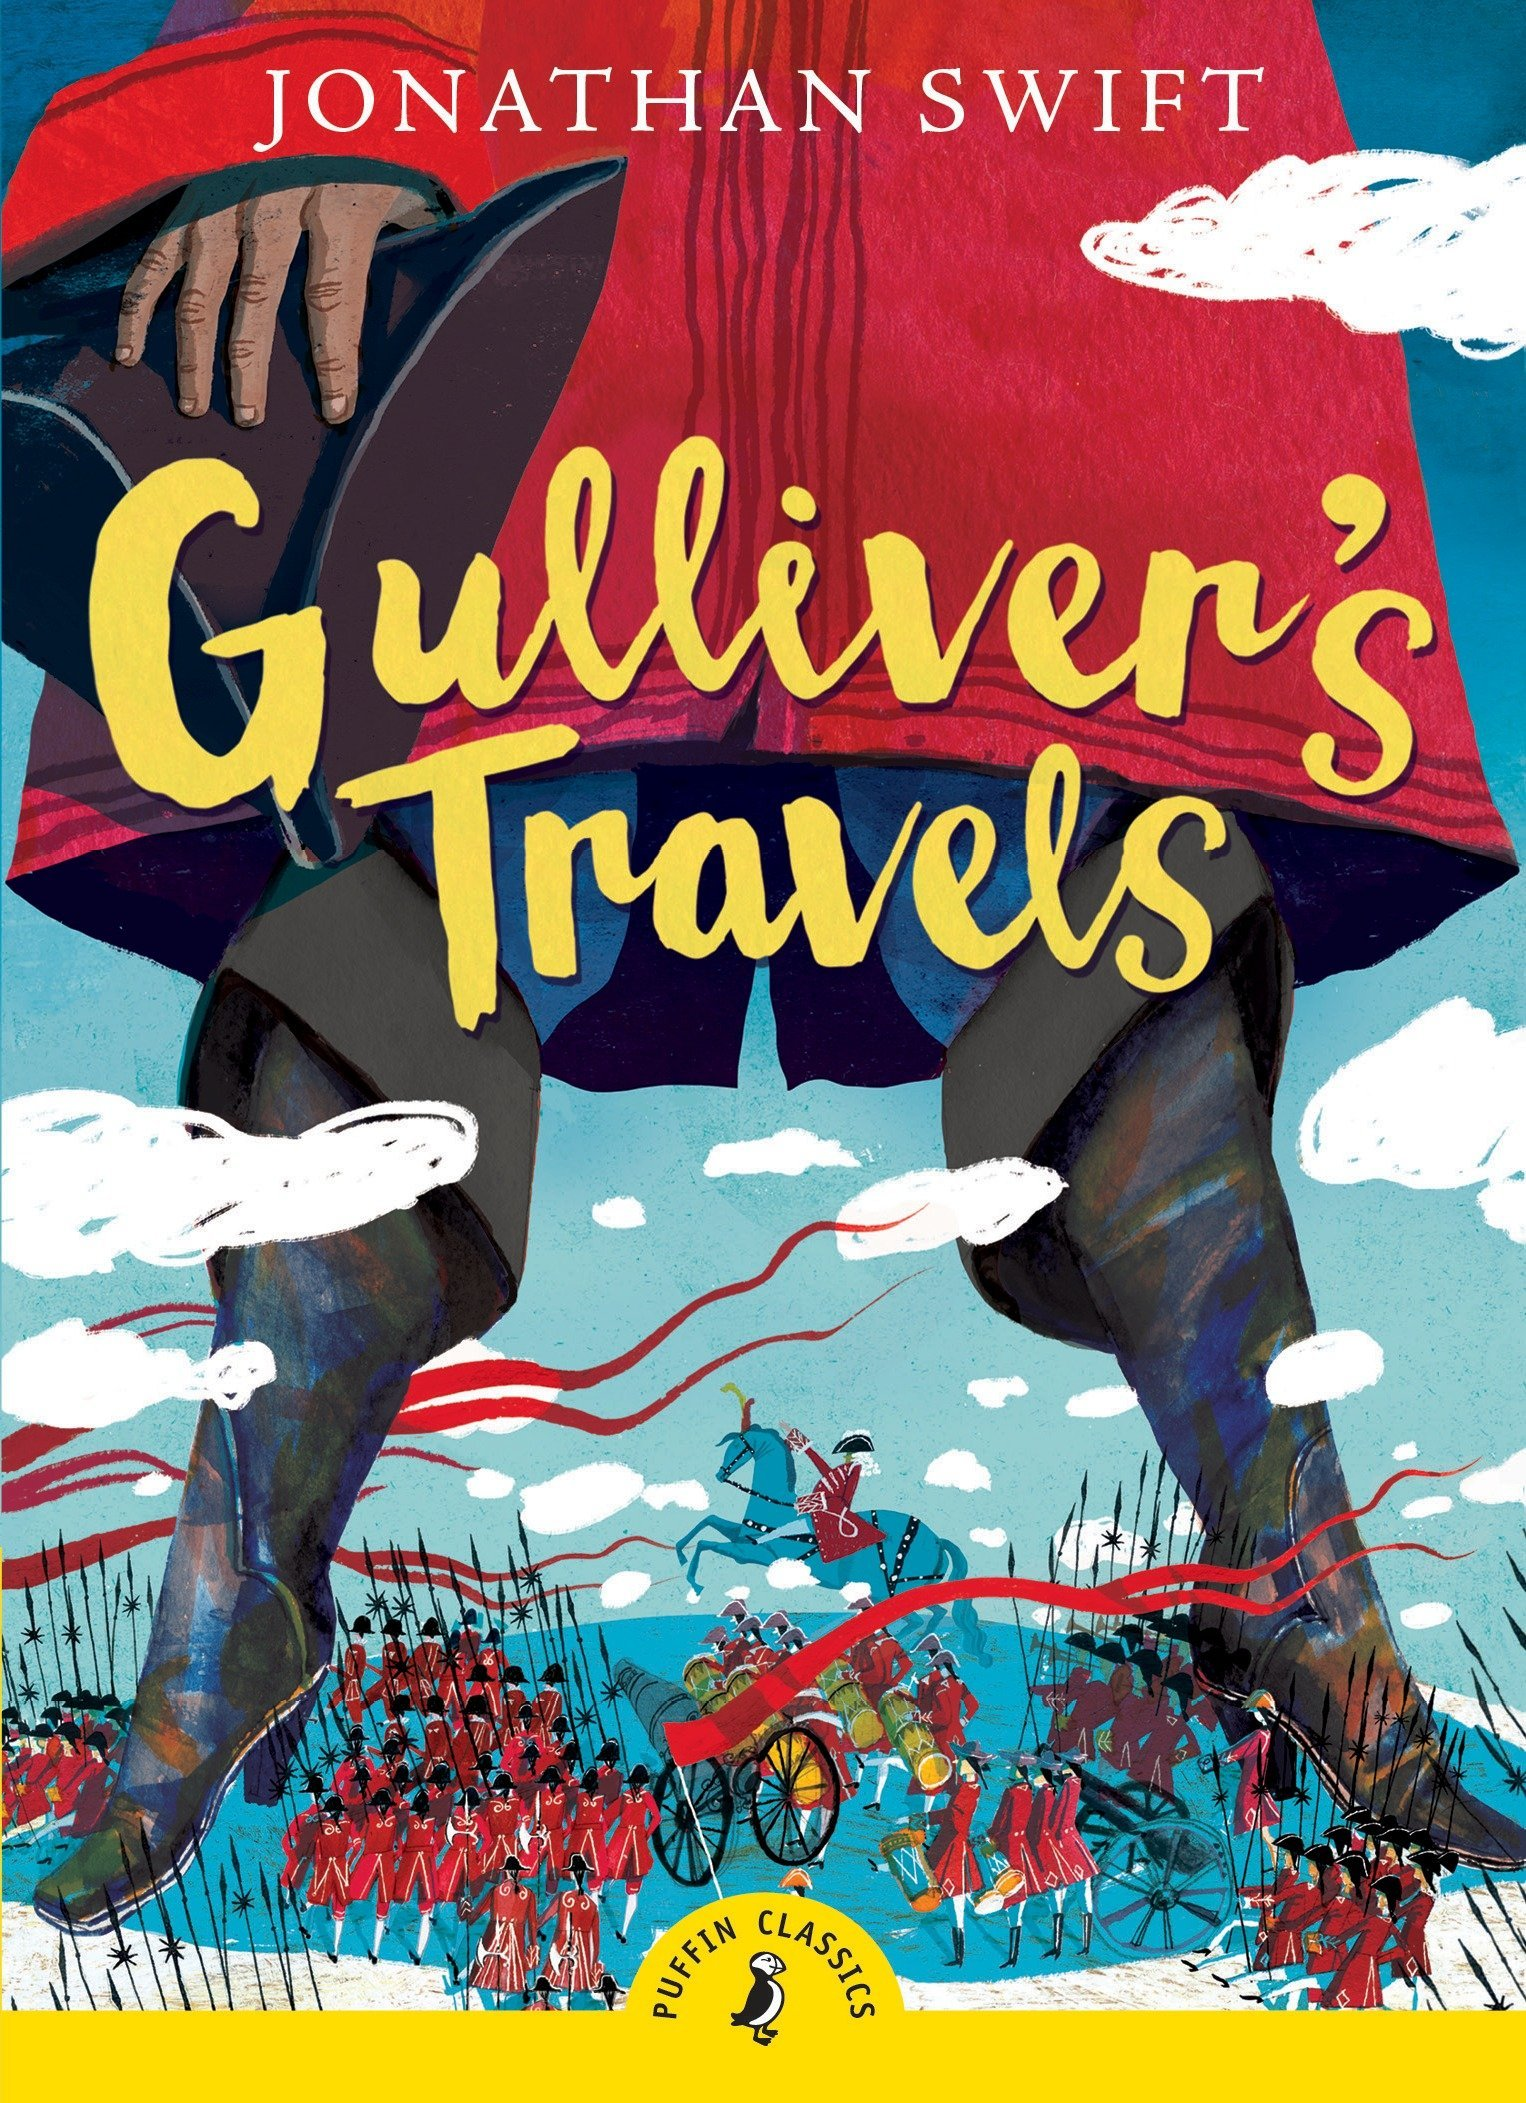 23) Gulliver's Travels - Often praised as one of if not the famous texts of satire, Swifts Gulliver's Travels is so much more than that. It's an insightful look into human nature, morality, and society, and despite its publication date of 1726 it reads remarkably like modern works. The stories are clever and engaging, and they contain something for almost all readers.